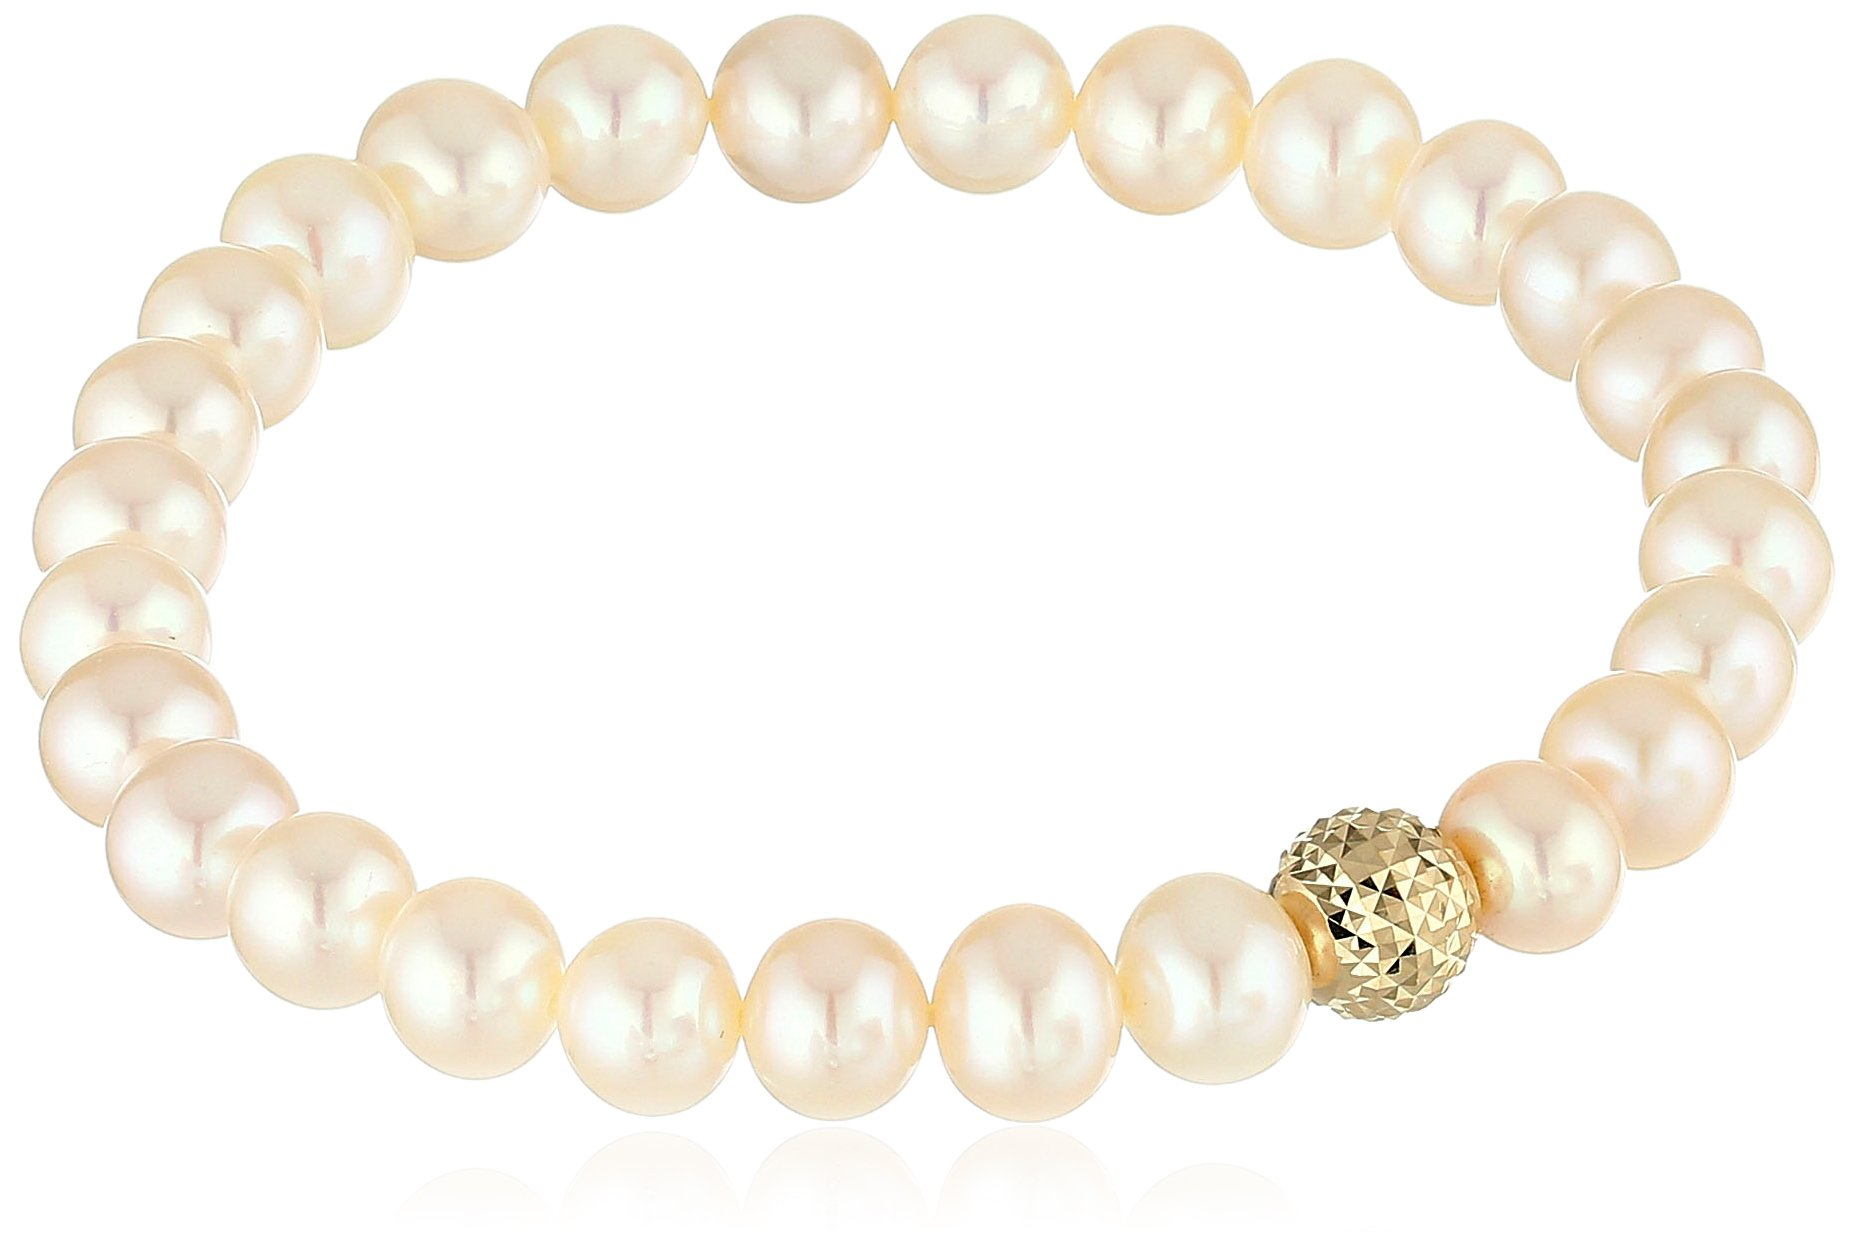 Honora 14k Yellow Gold 7-8mm Freshwater Cultured Pearl Stretch Bracelet